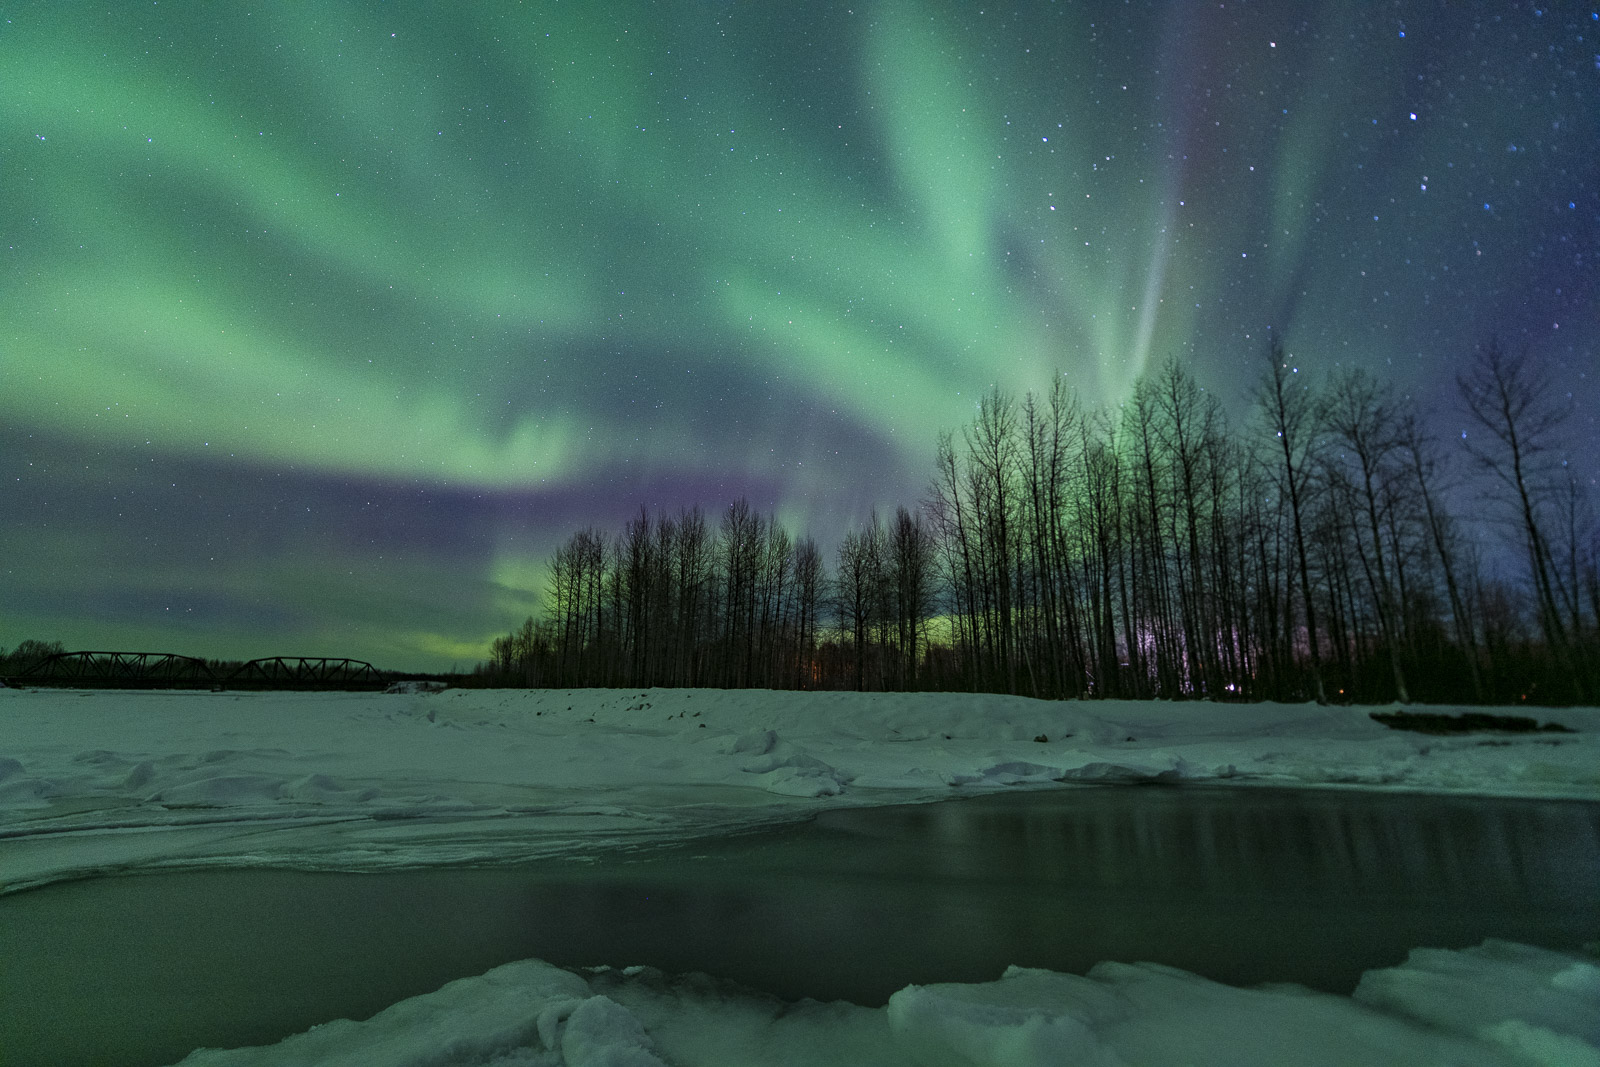 While out photographing the aurora borealis on the frozen Susitna River near Talkeetna, I found a patch of open water. I photographed...